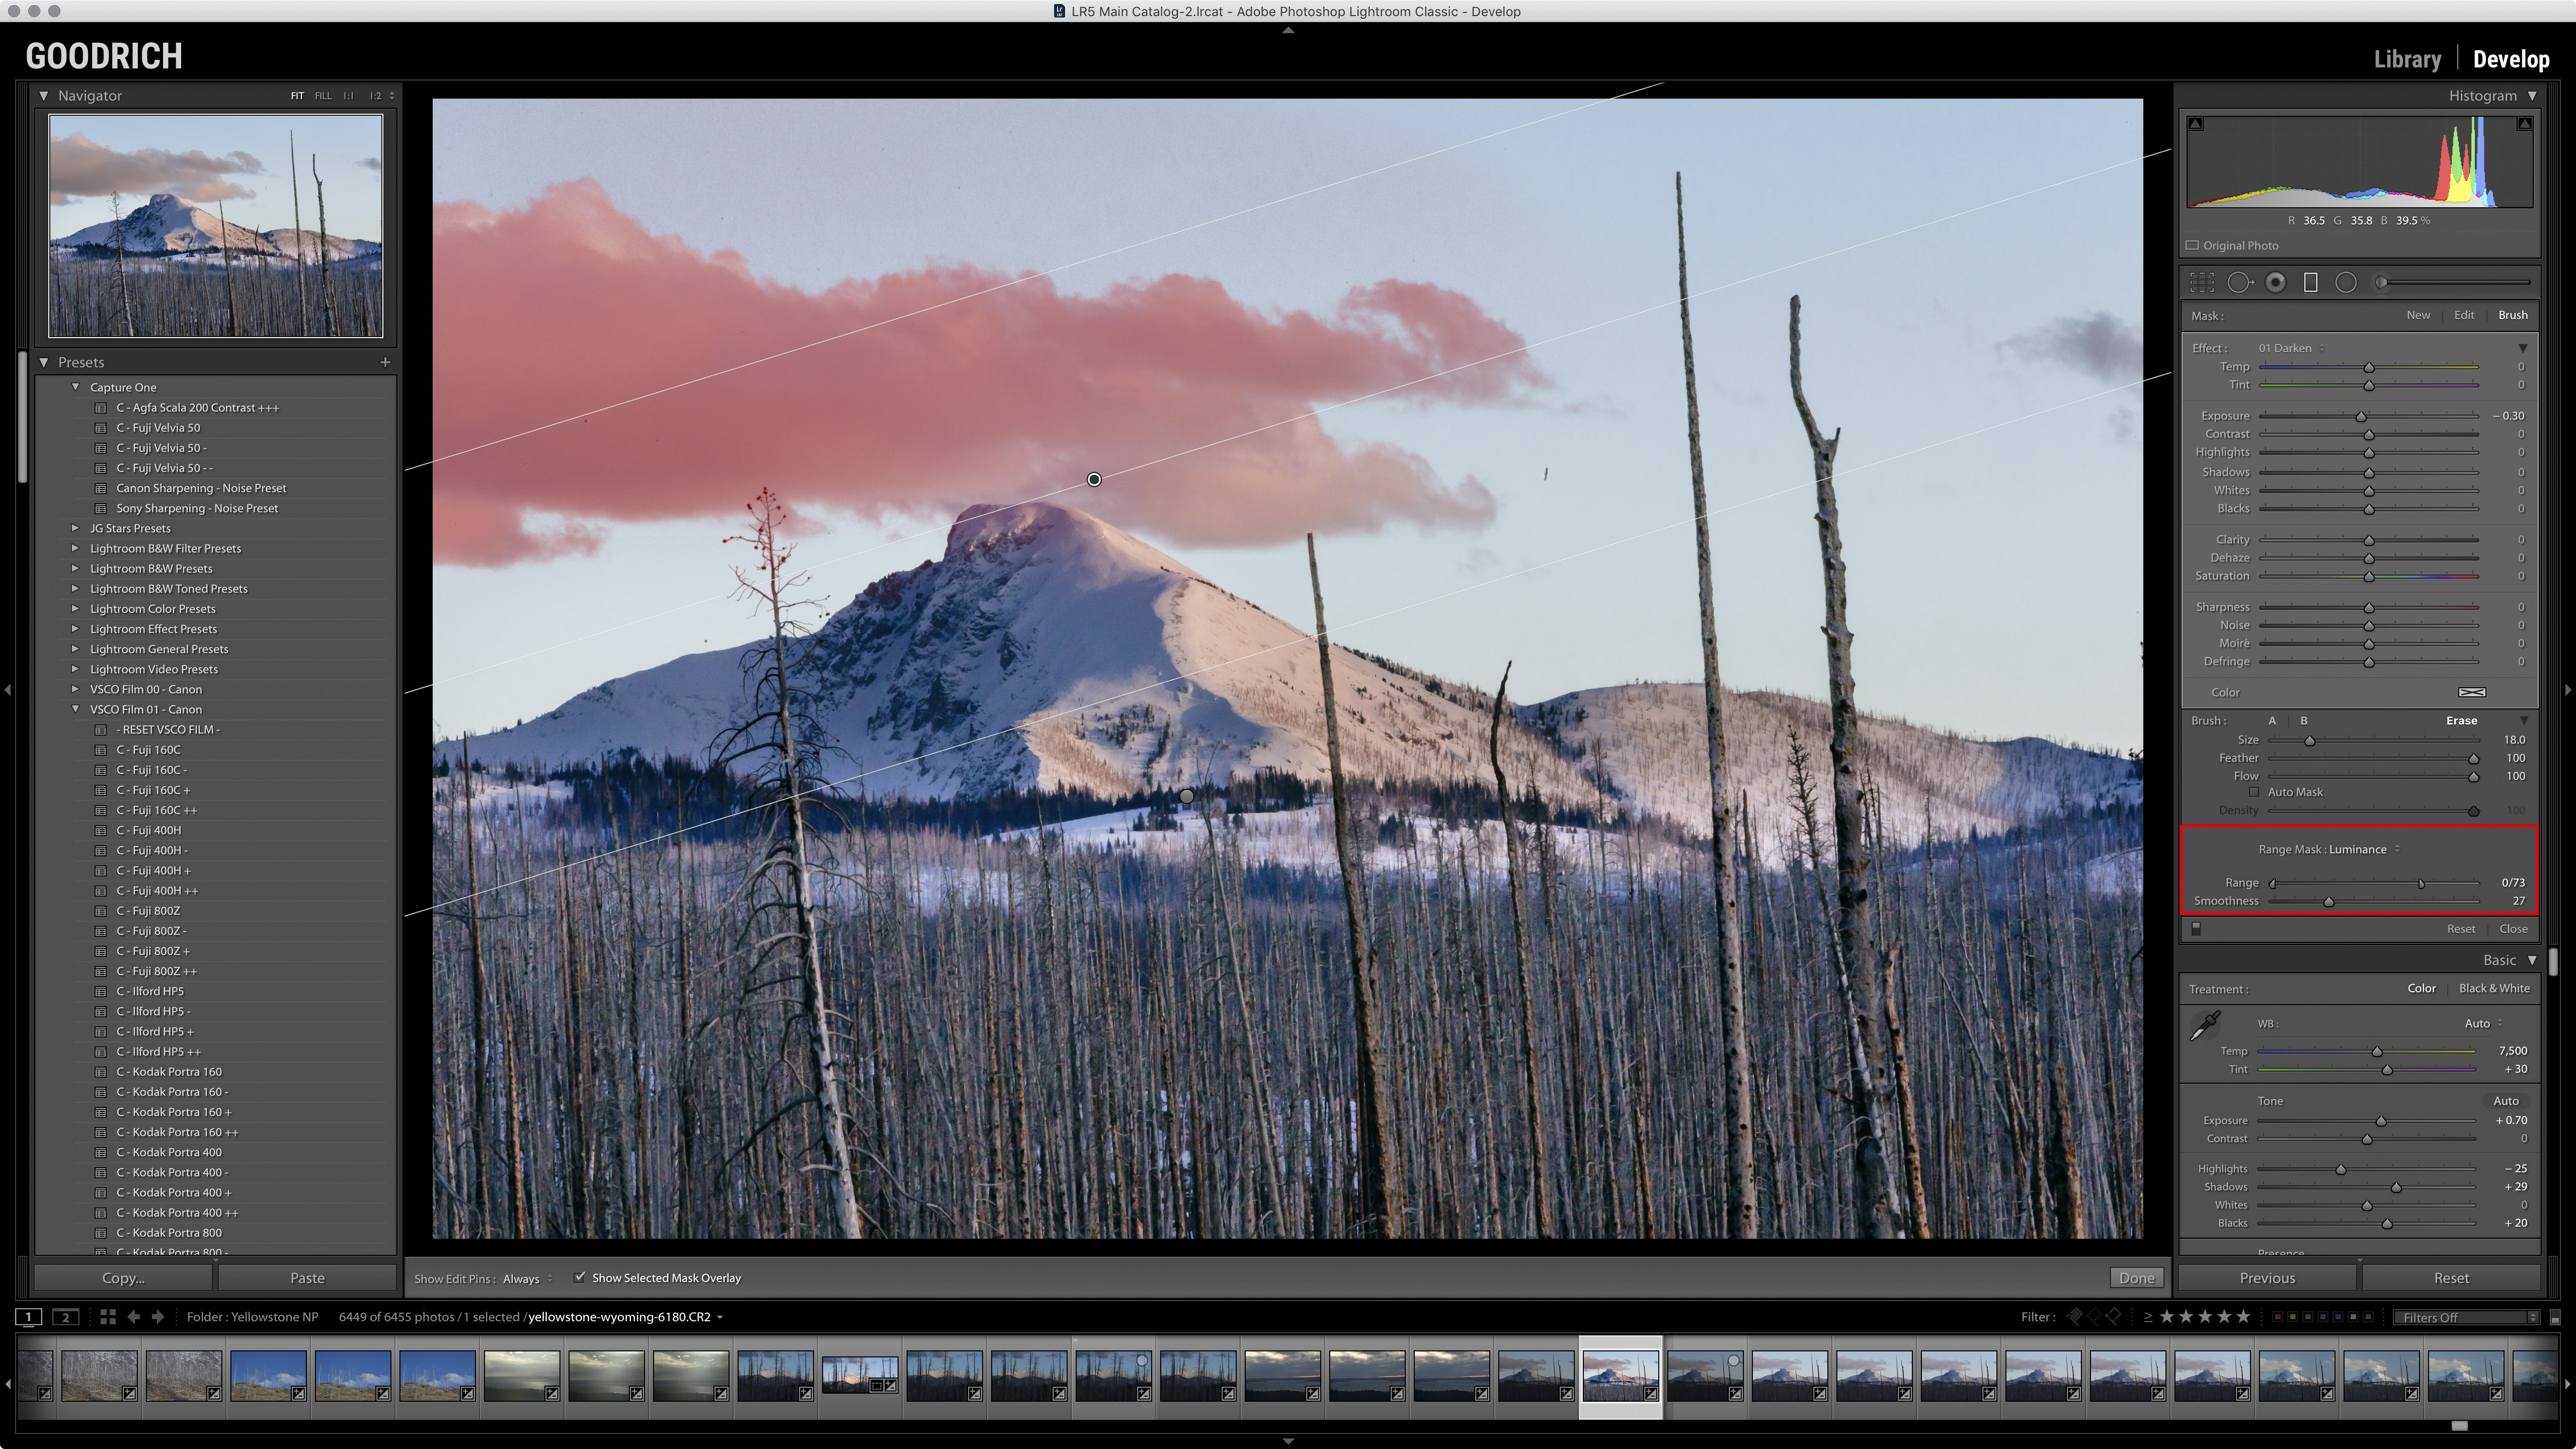 lightroom classic cc screen shot photo by Jay Goodrich